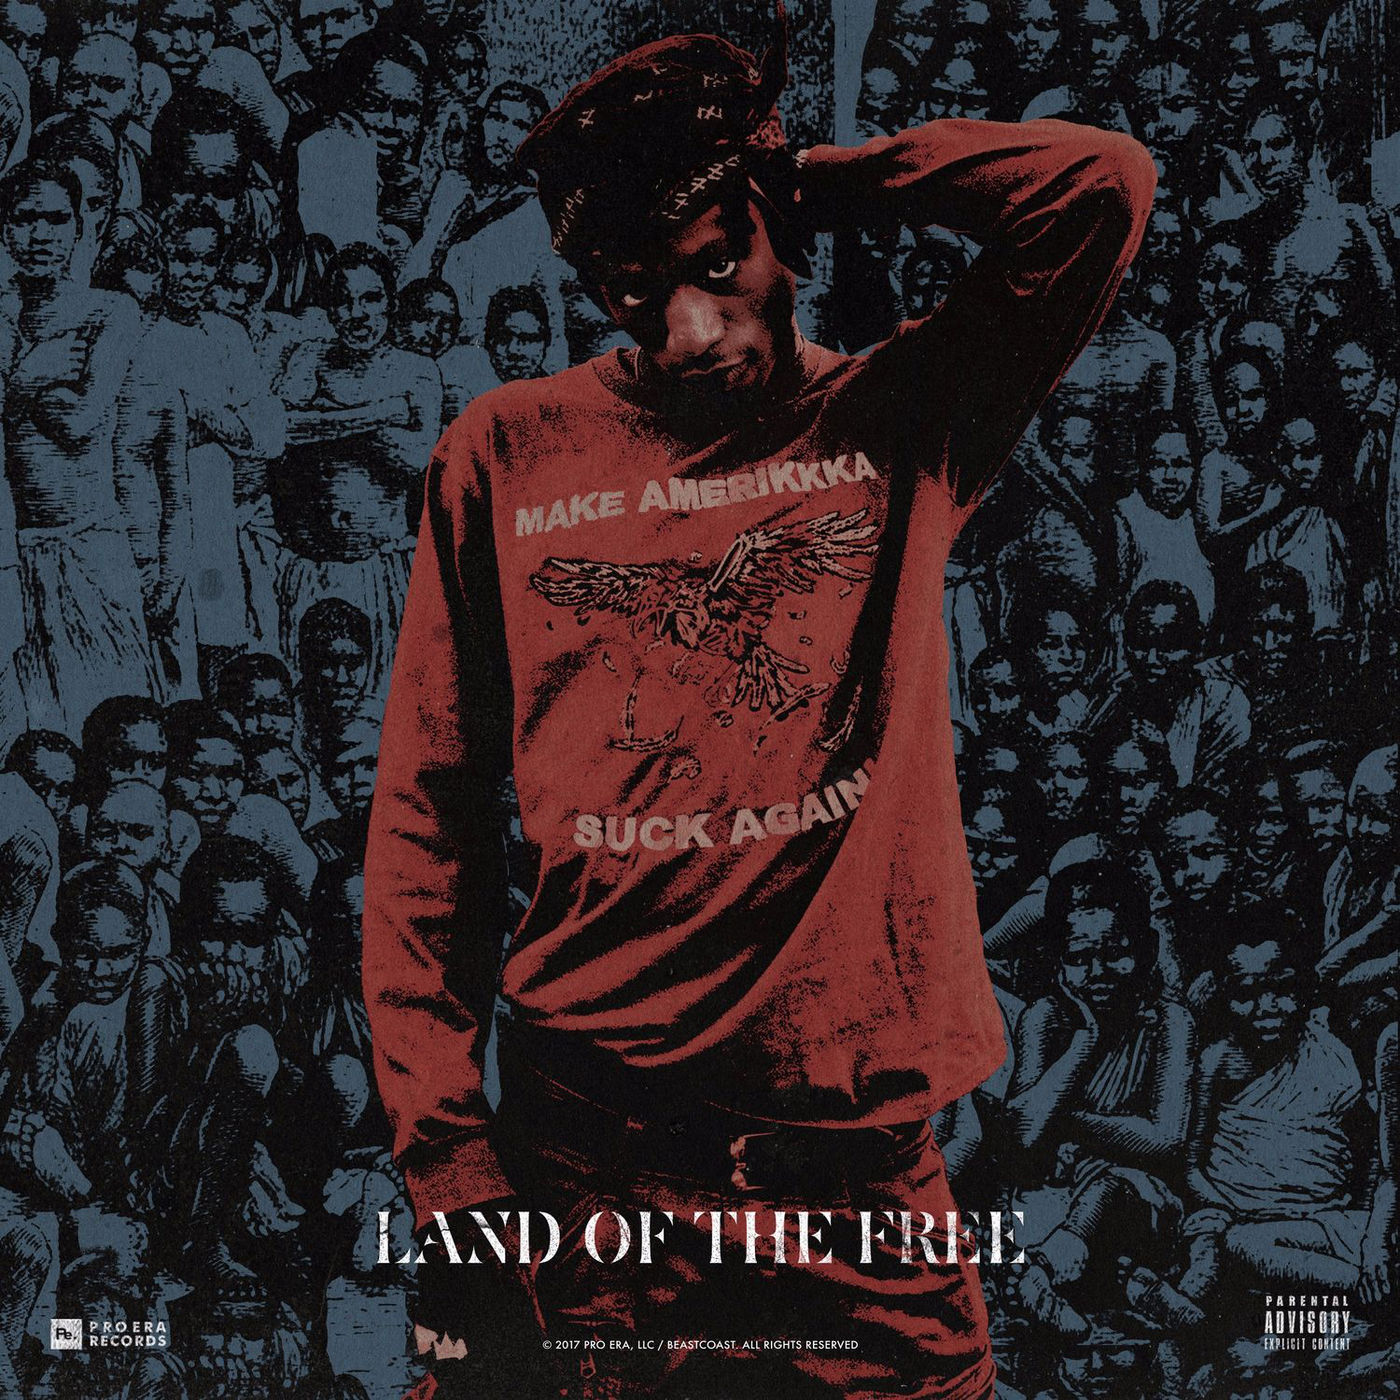 Joey Bada$$ - Land of the Free - Single Cover